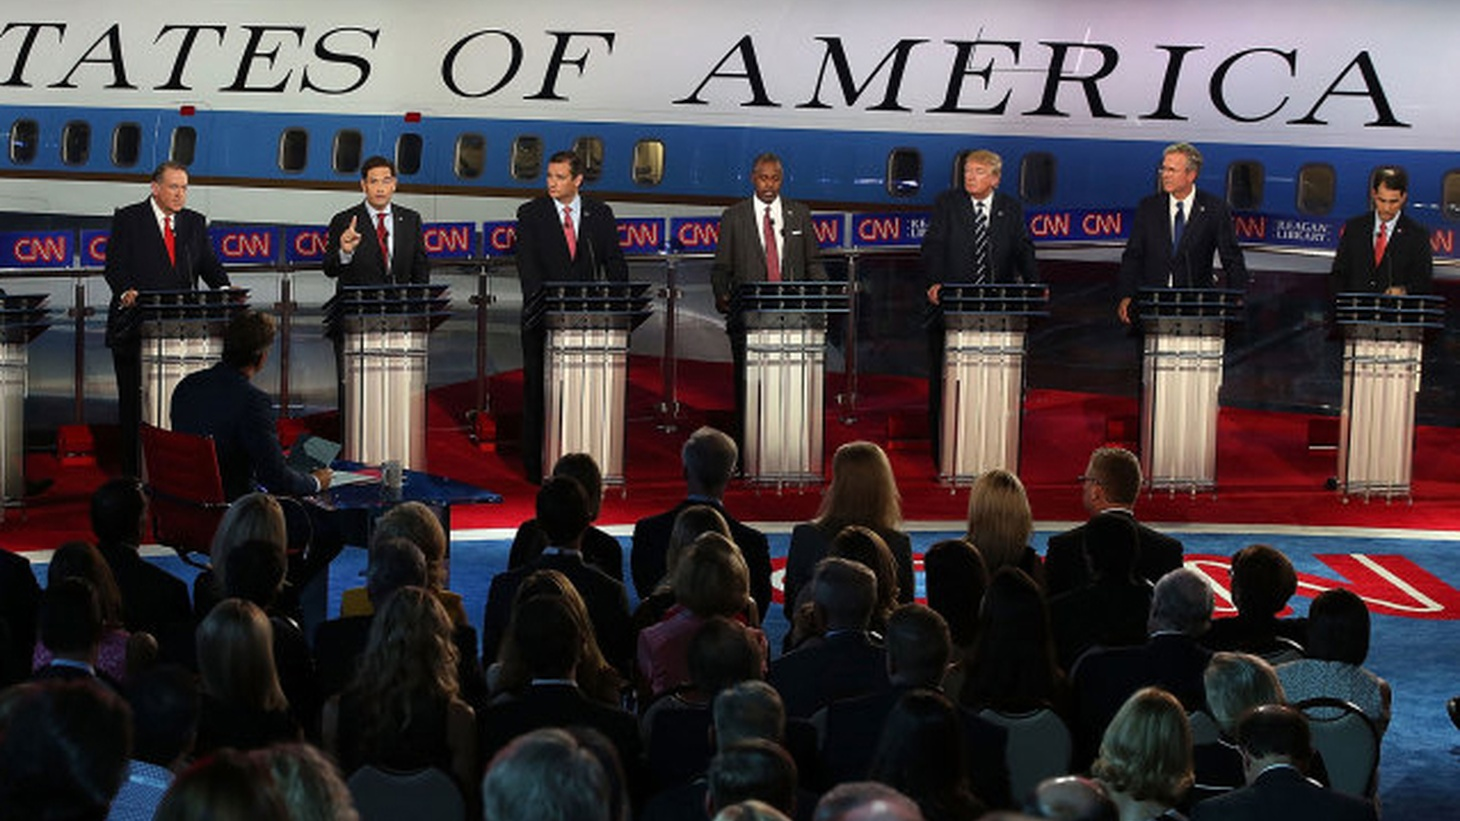 We recap last night's final debate between the Republican presidential candidates in Las Vegas. Later, we look at a different kind of campaigning going on as we enter film and television awards season.